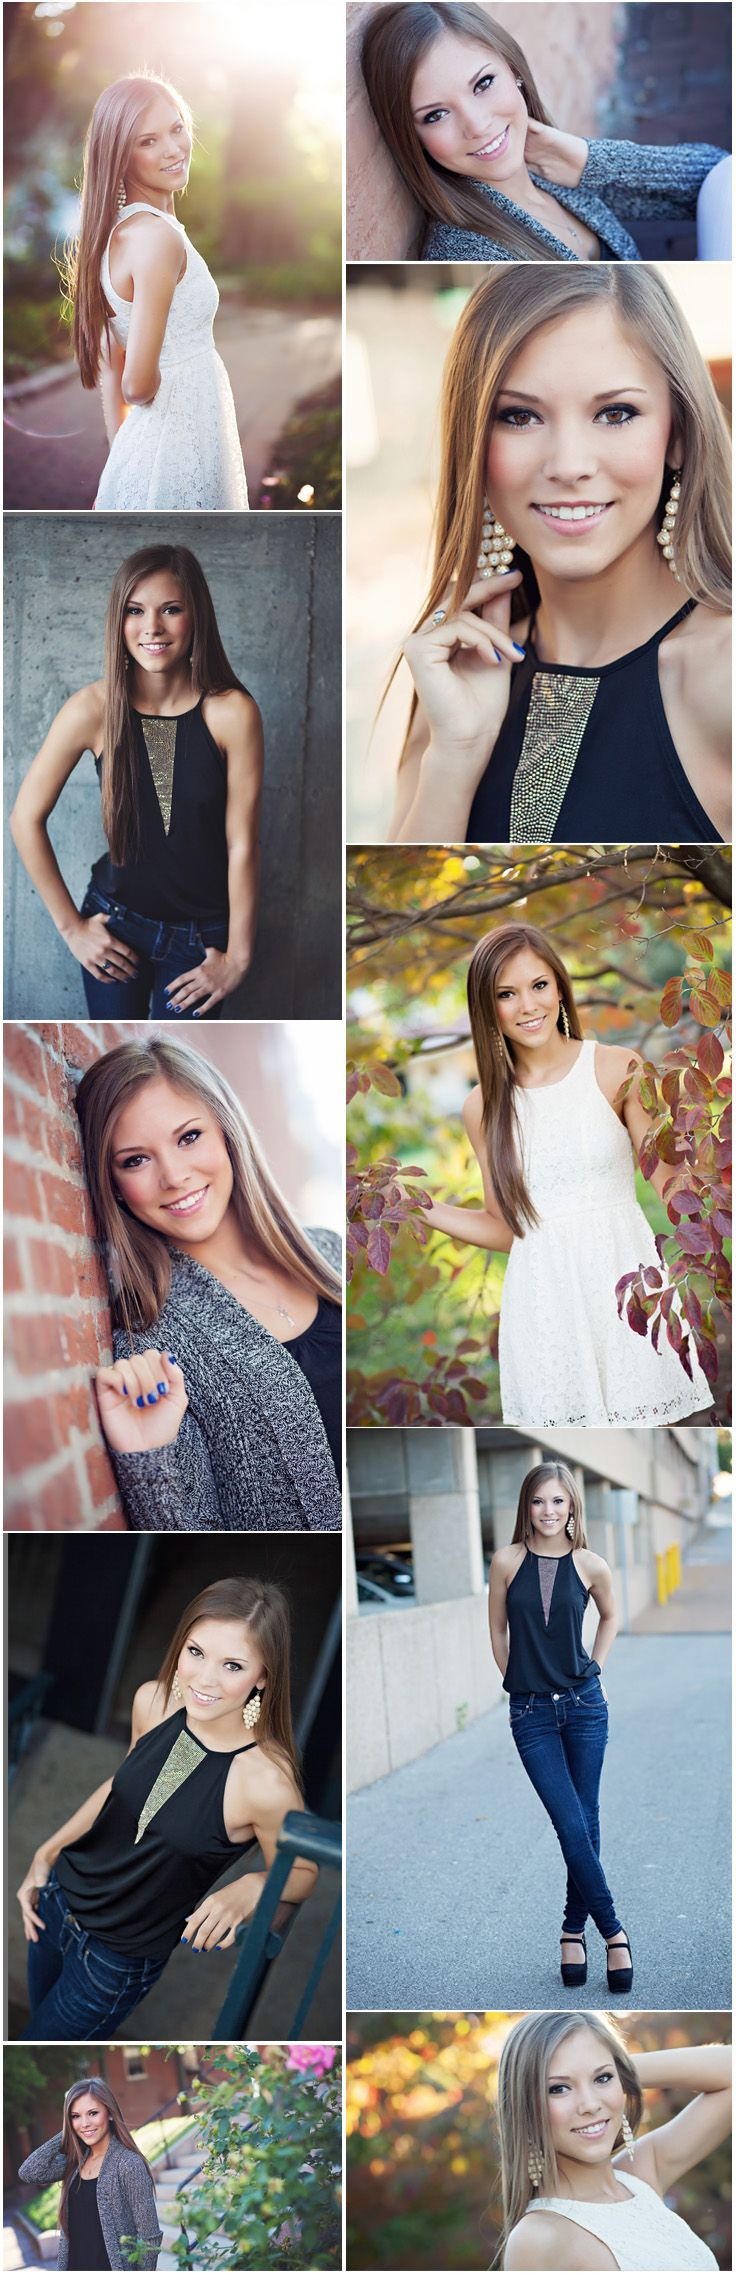 B.E. Senior posing inspiration - Shelby high school senior photos, Bliss Eleven